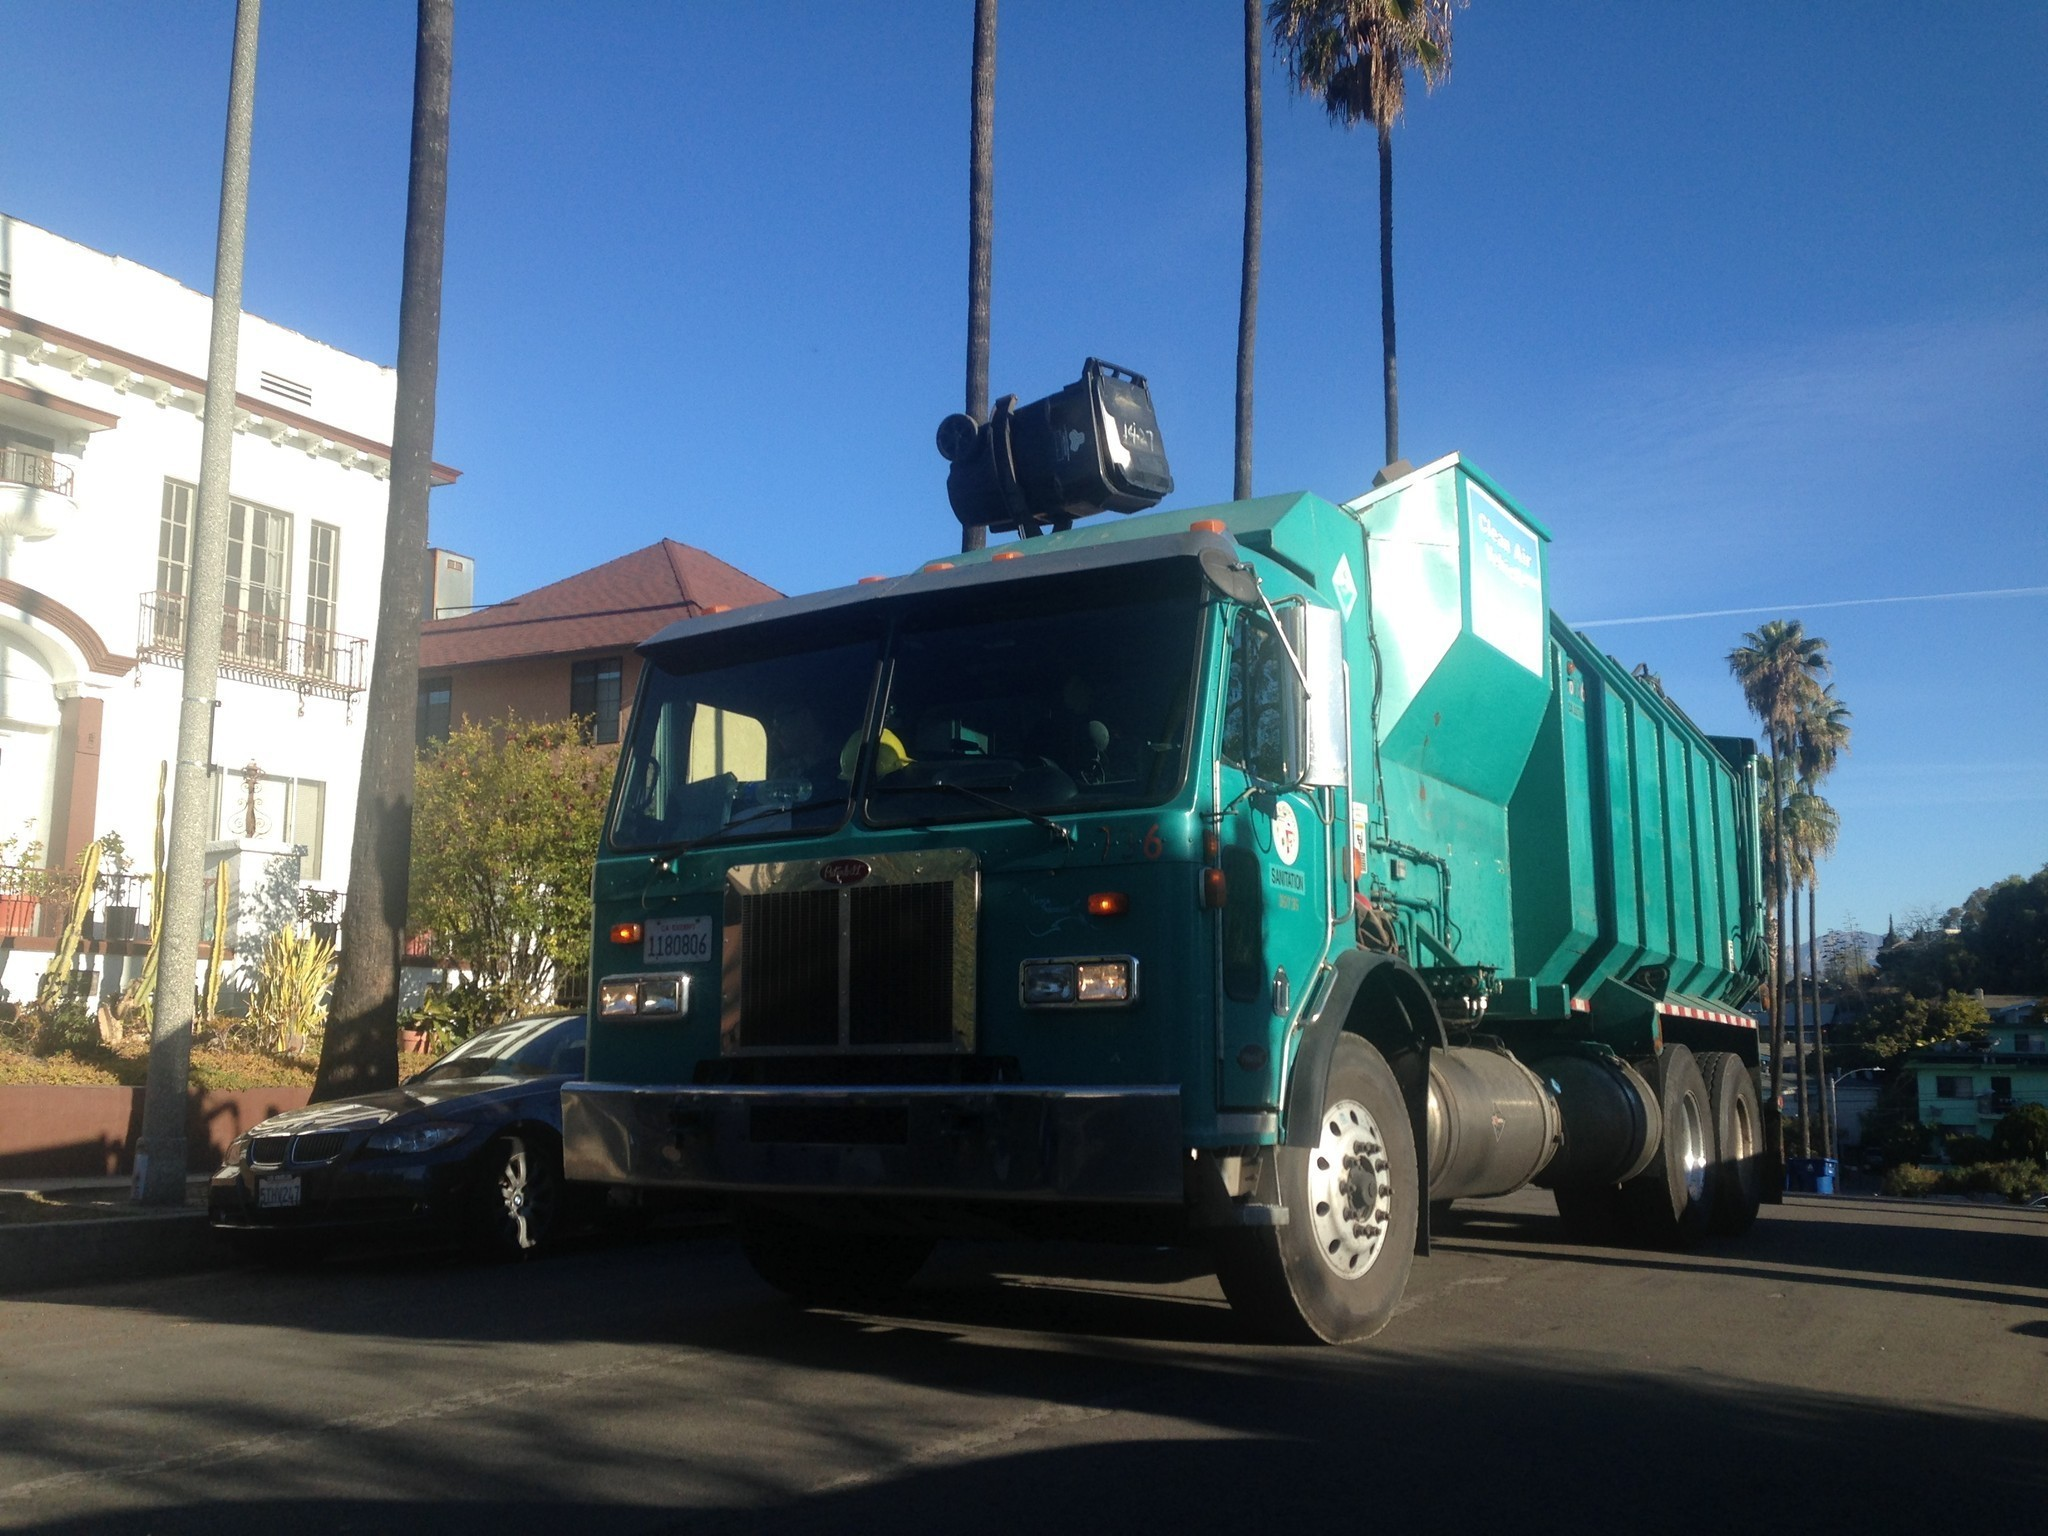 Jerseys NFL Outlet - LA to pay $26 million for ban on naps by garbage-truck drivers ...